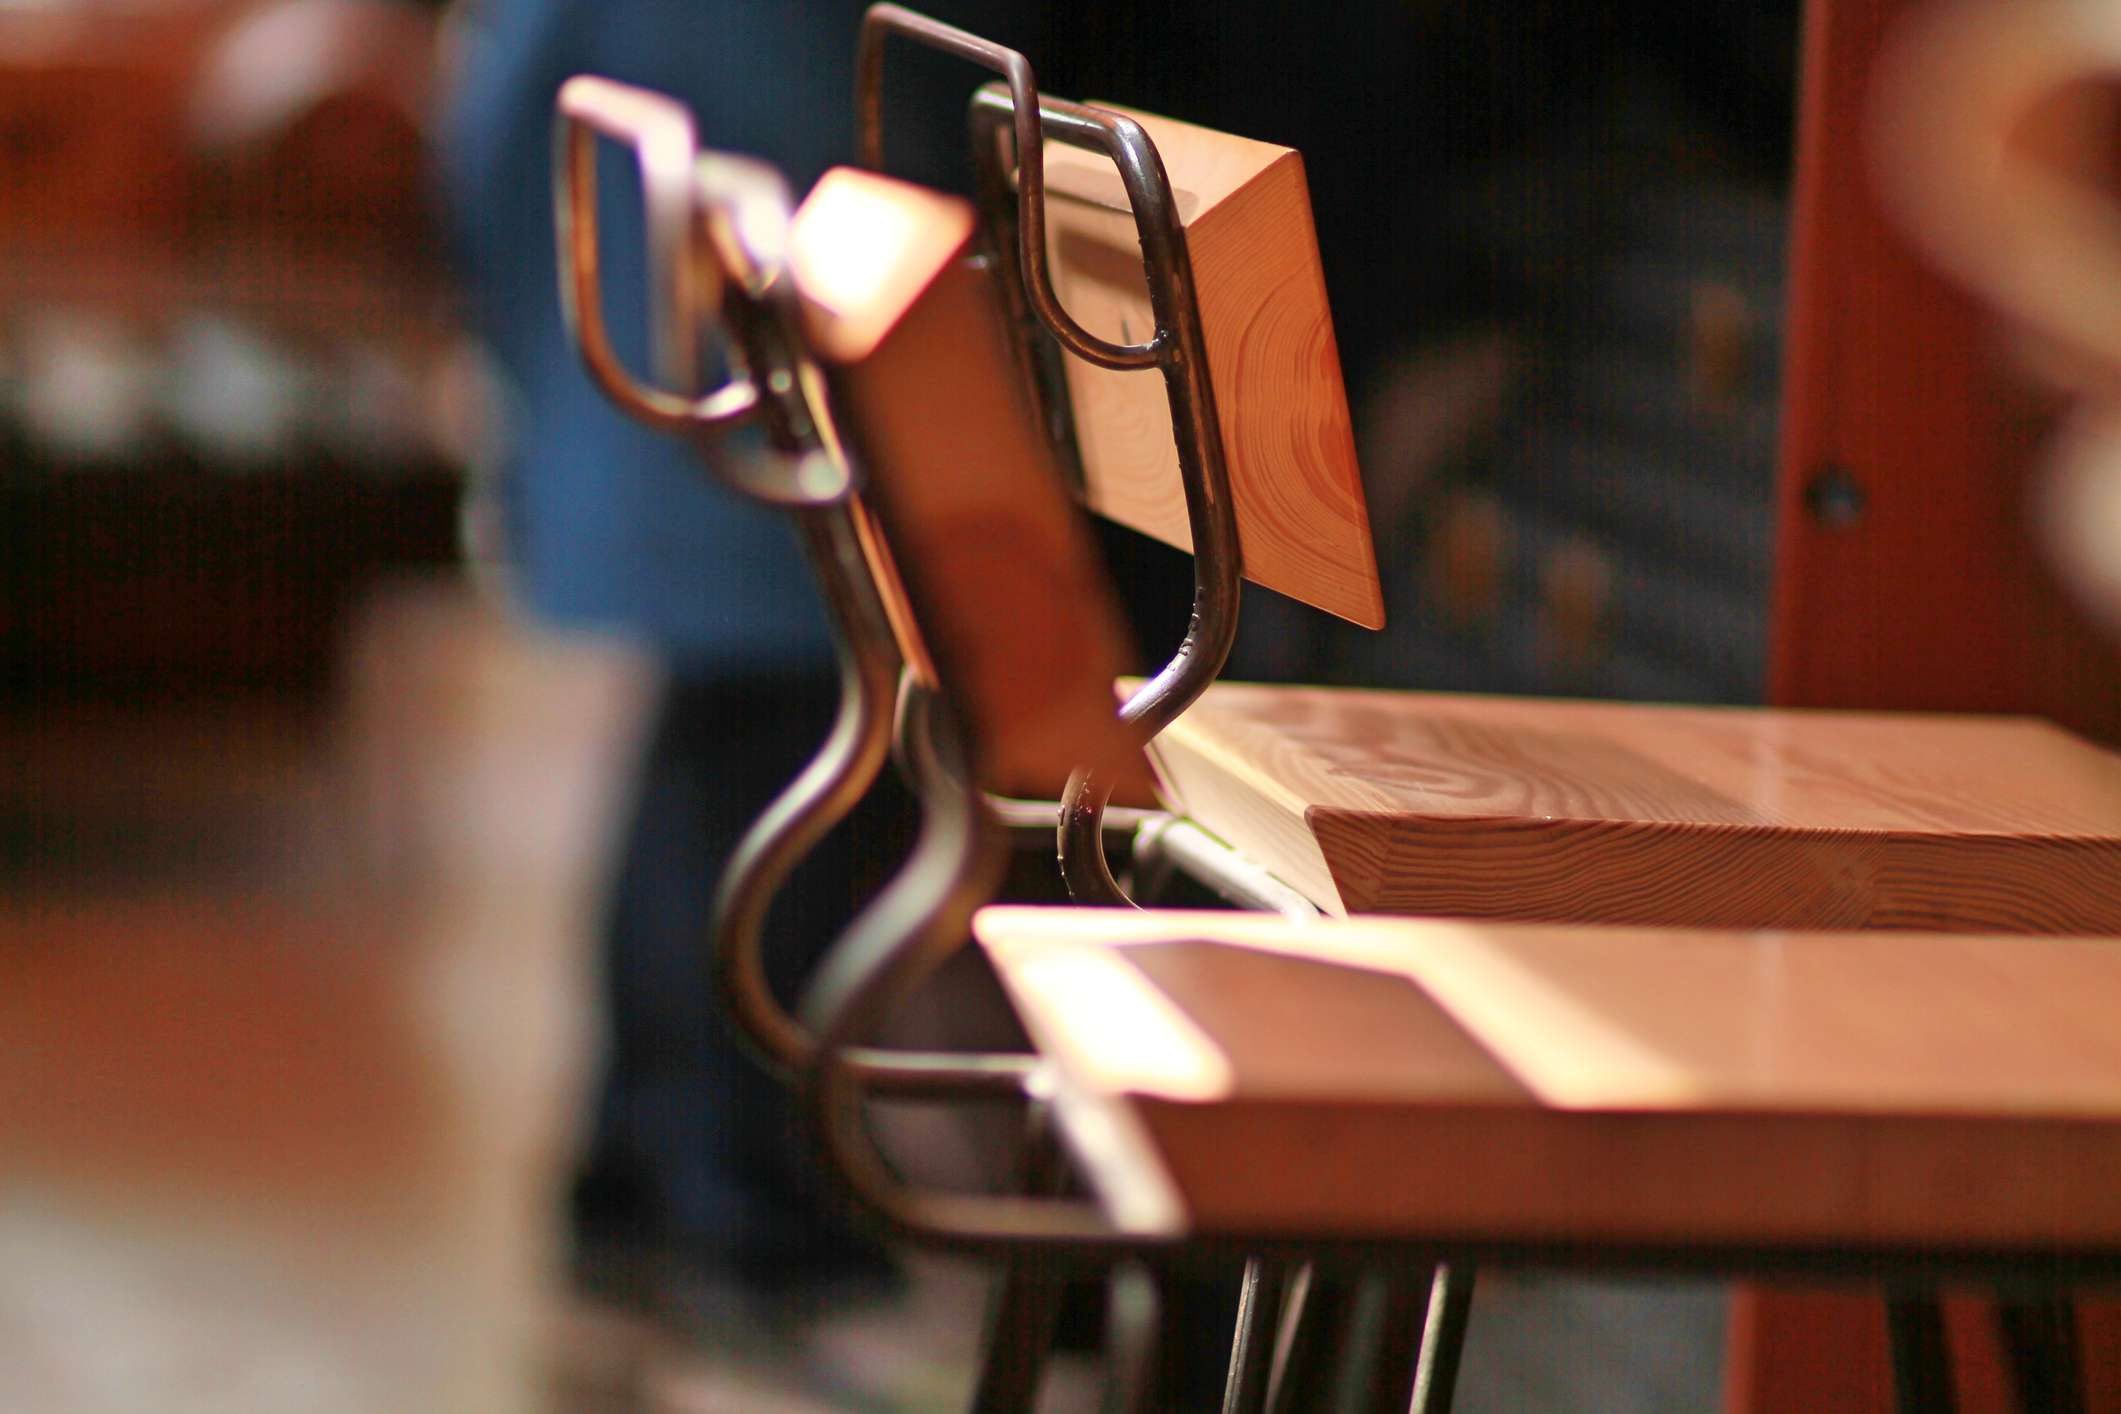 Close-Up Of Wooden Chairs On Floor